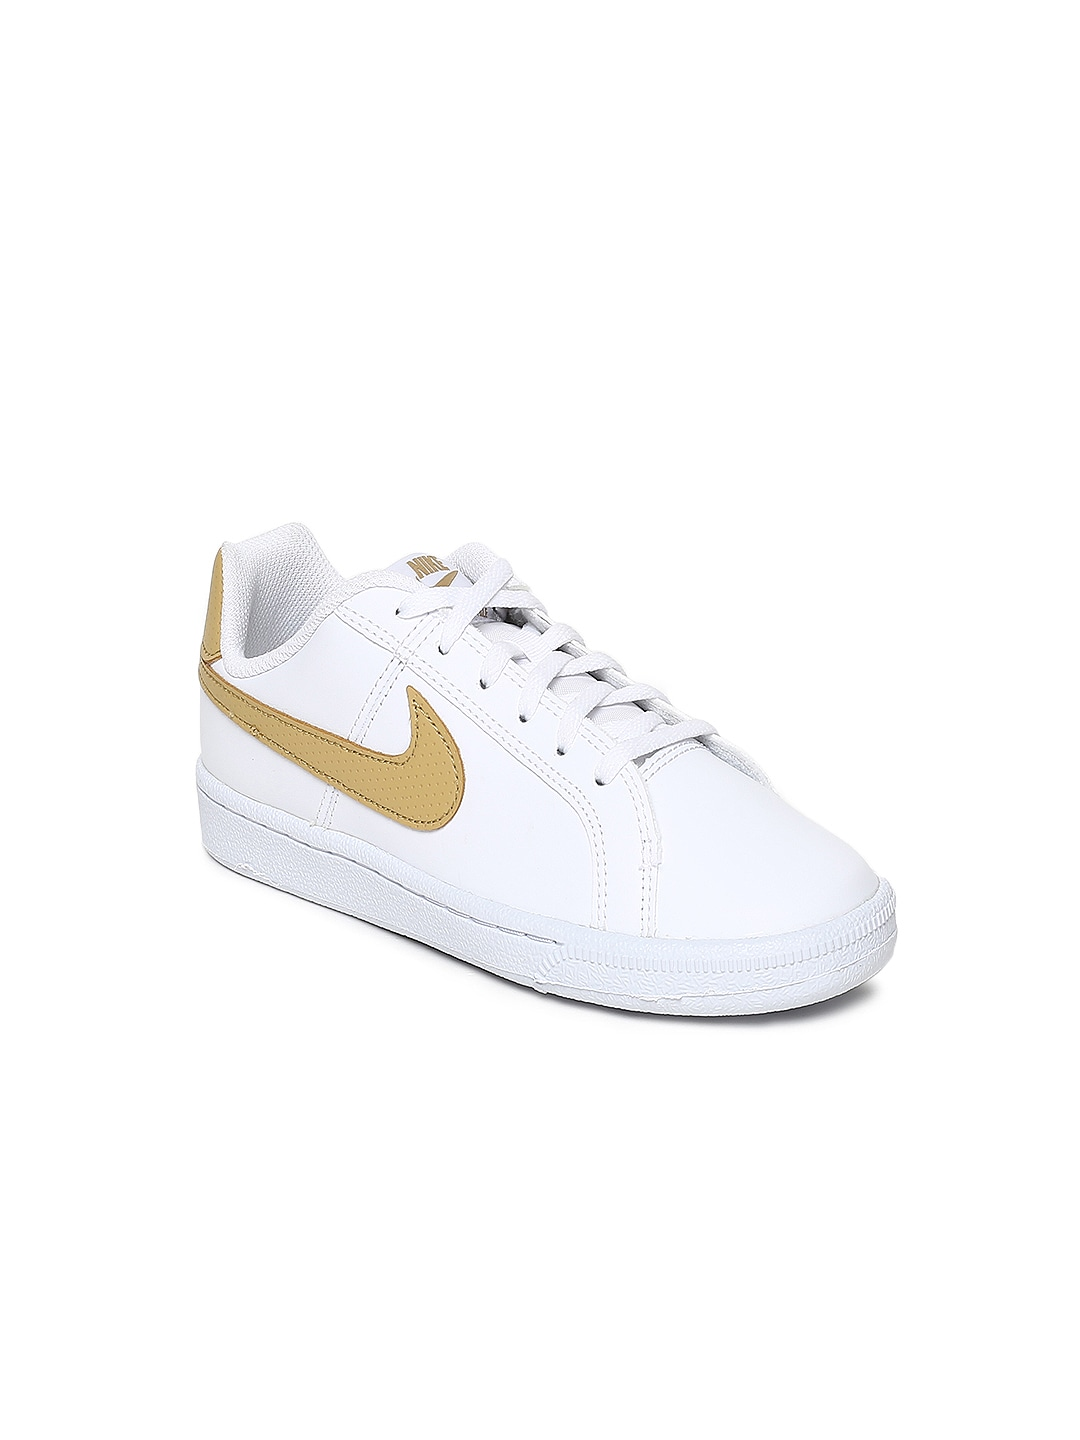 a00c5197ec2472 Nike Leather Shoes - Buy Nike Leather Shoes Online in India